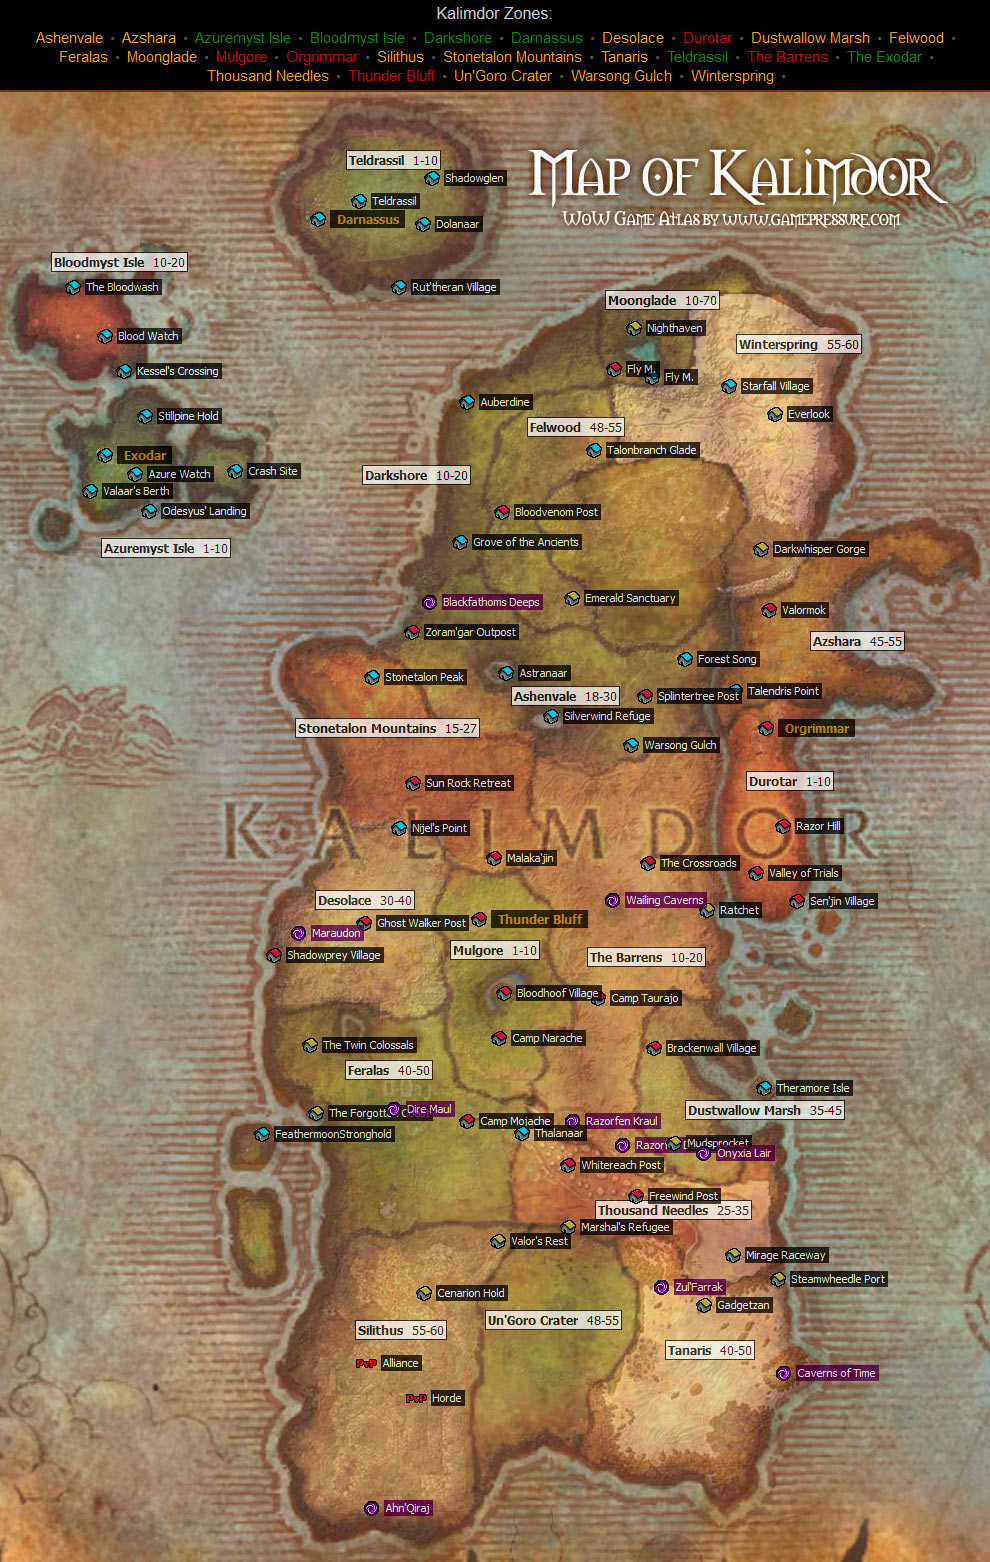 Kalimdor Map from World of Warcraft | game-maps.com on molten core map, eastern kingdoms map, guild wars 2 gendarran fields map, dragonblight map, stormwind map, undercity map, ashenvale map, azeroth map, netherstorm map, darkshore map, desolace map, dustwallow marsh map, thousand needles map, draenor map, orgrimmar map, lordaeron map, wrath of the lich king map, emerald dream map, wow fossil dig sites map, bloodmyst isle map,